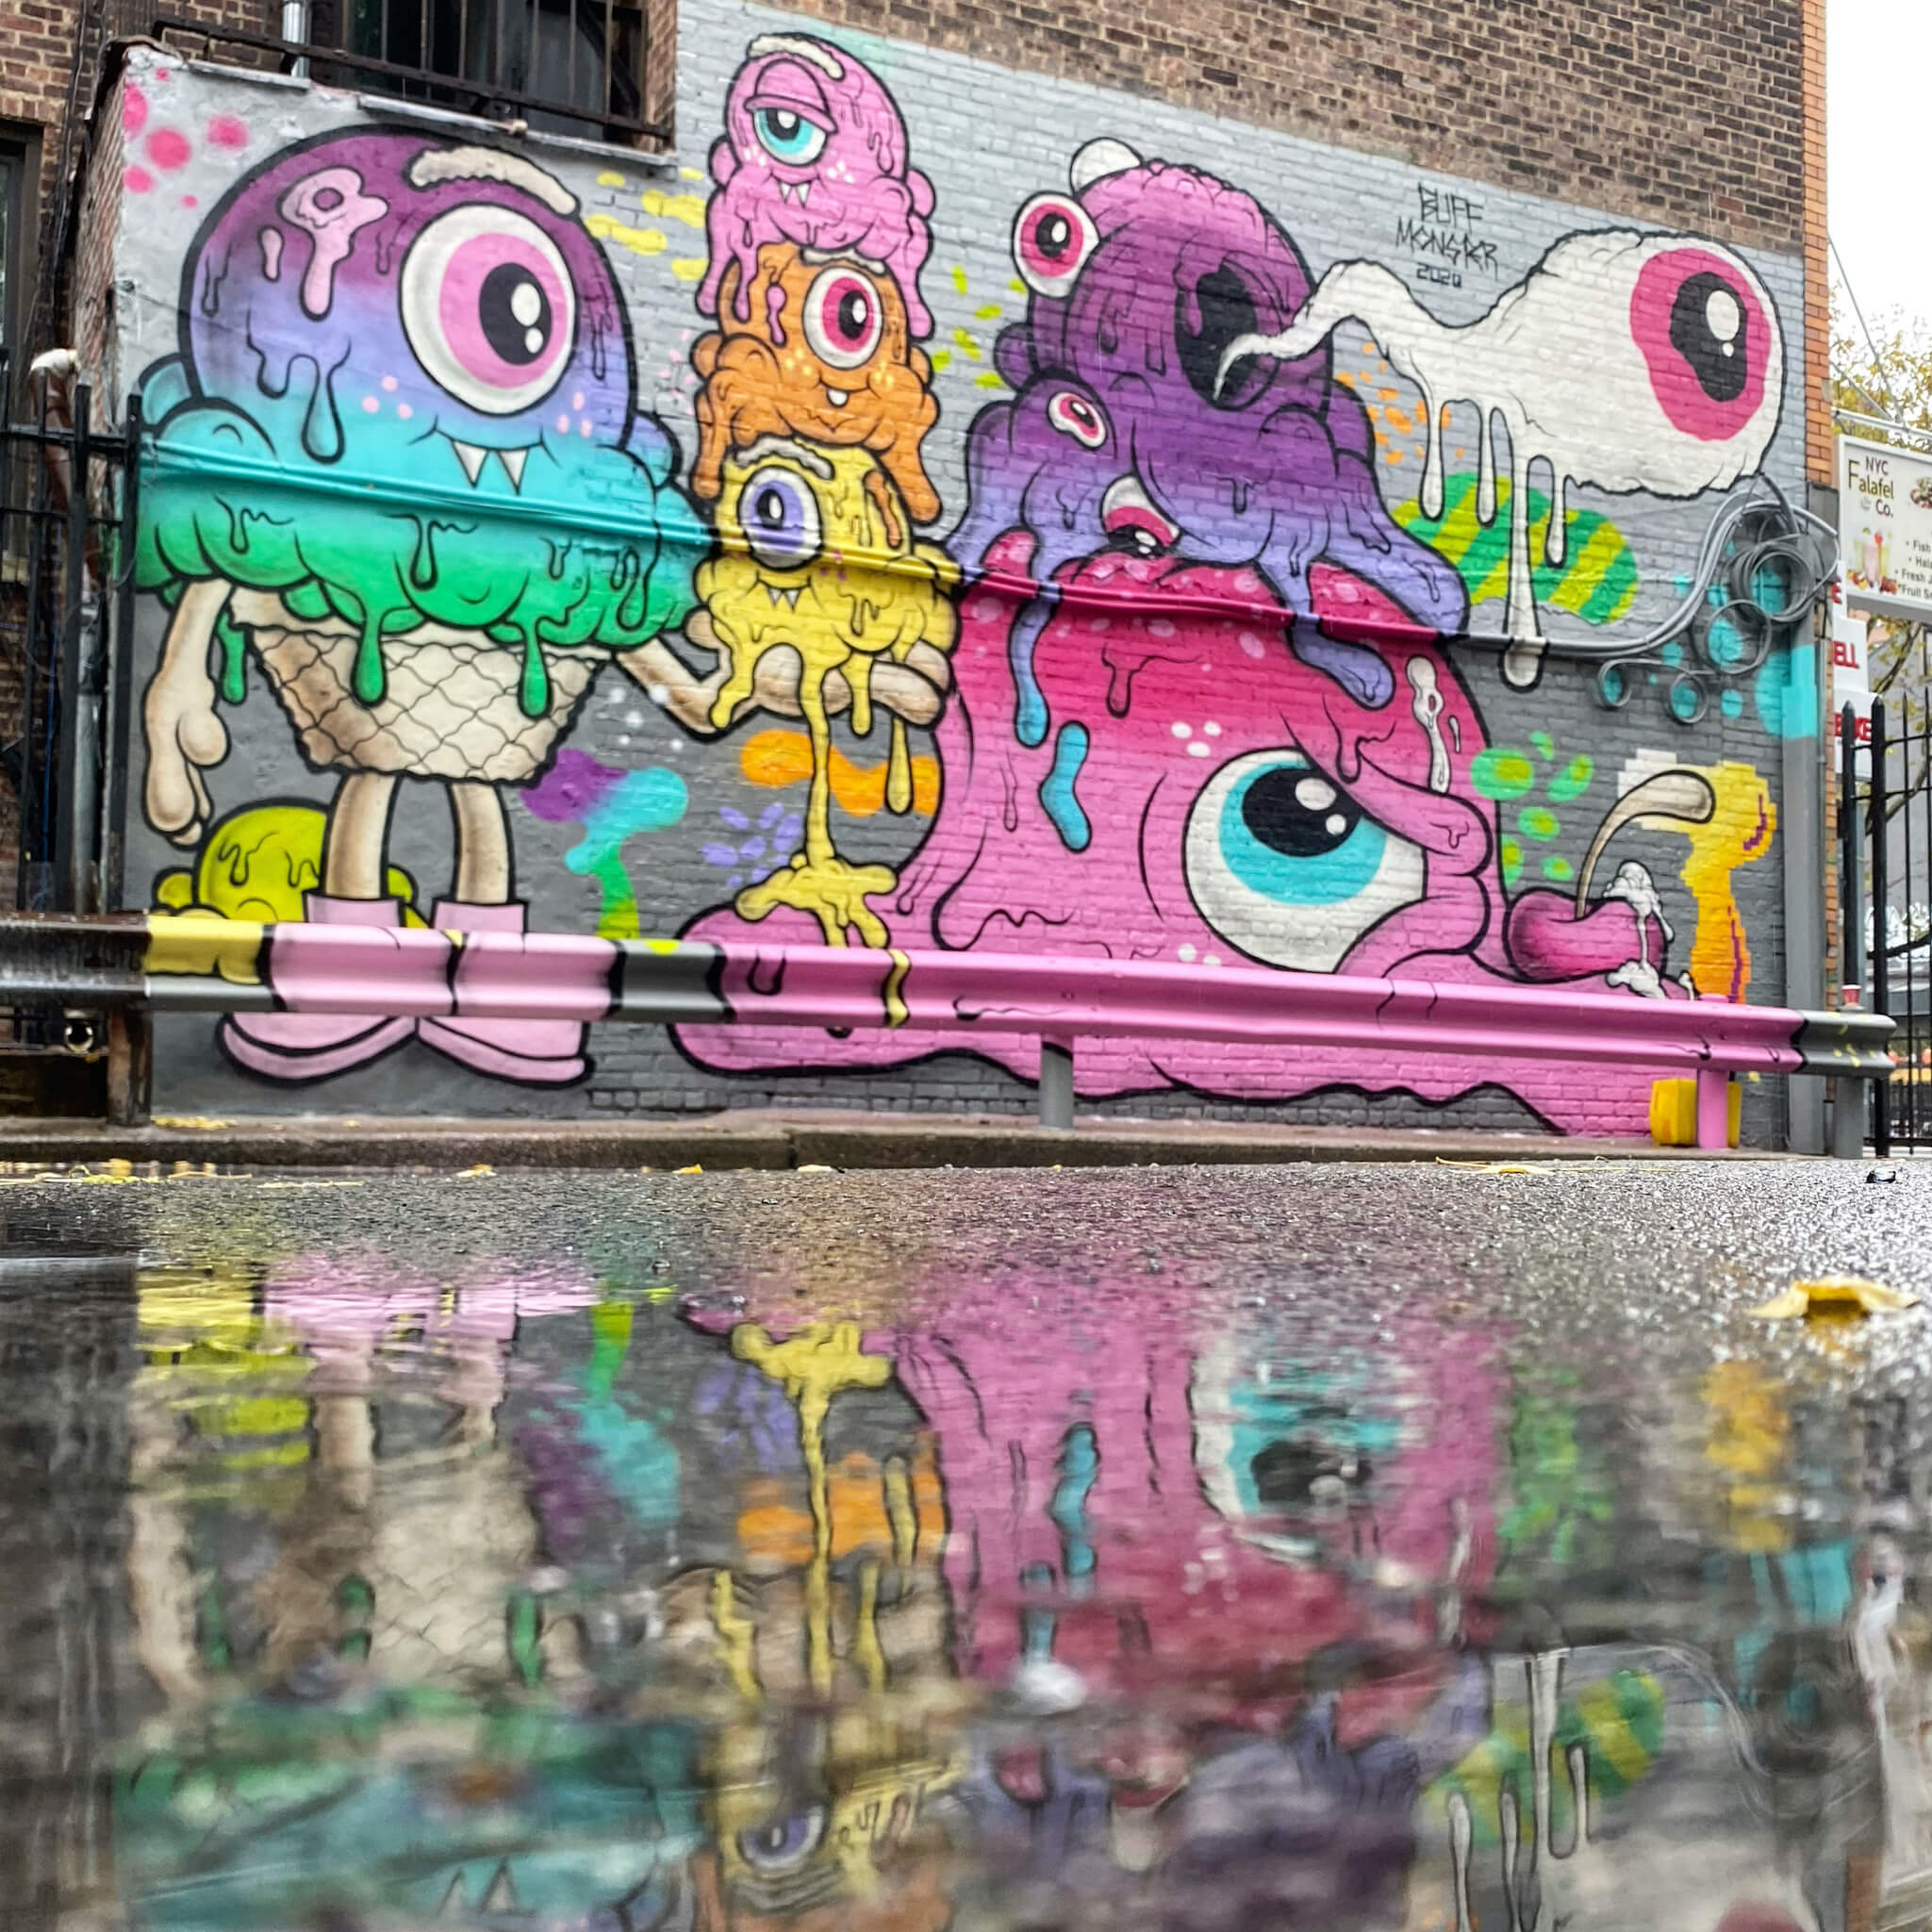 Colourful Street Art Photography by Sarah Sansom - Reflected in puddle